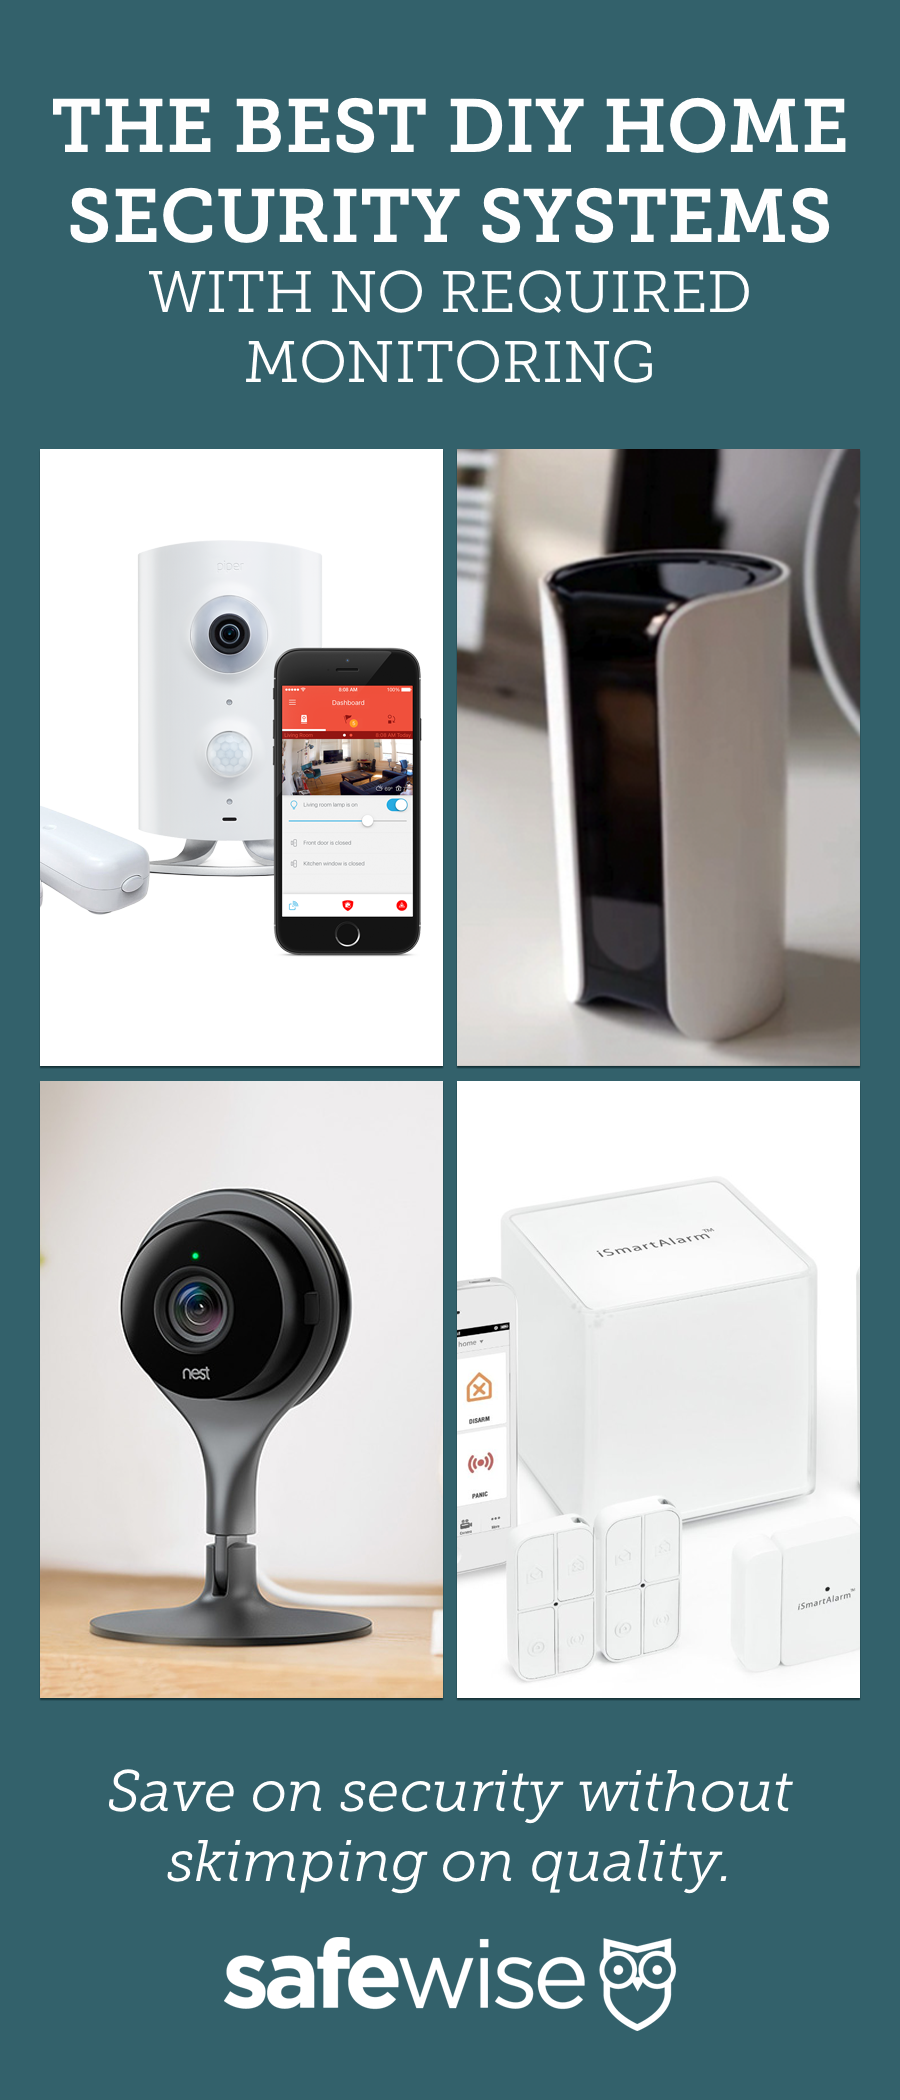 Best Diy Home Security Systems Of 2021 Safewise Diy Home Security Home Security Tips Wireless Home Security Systems